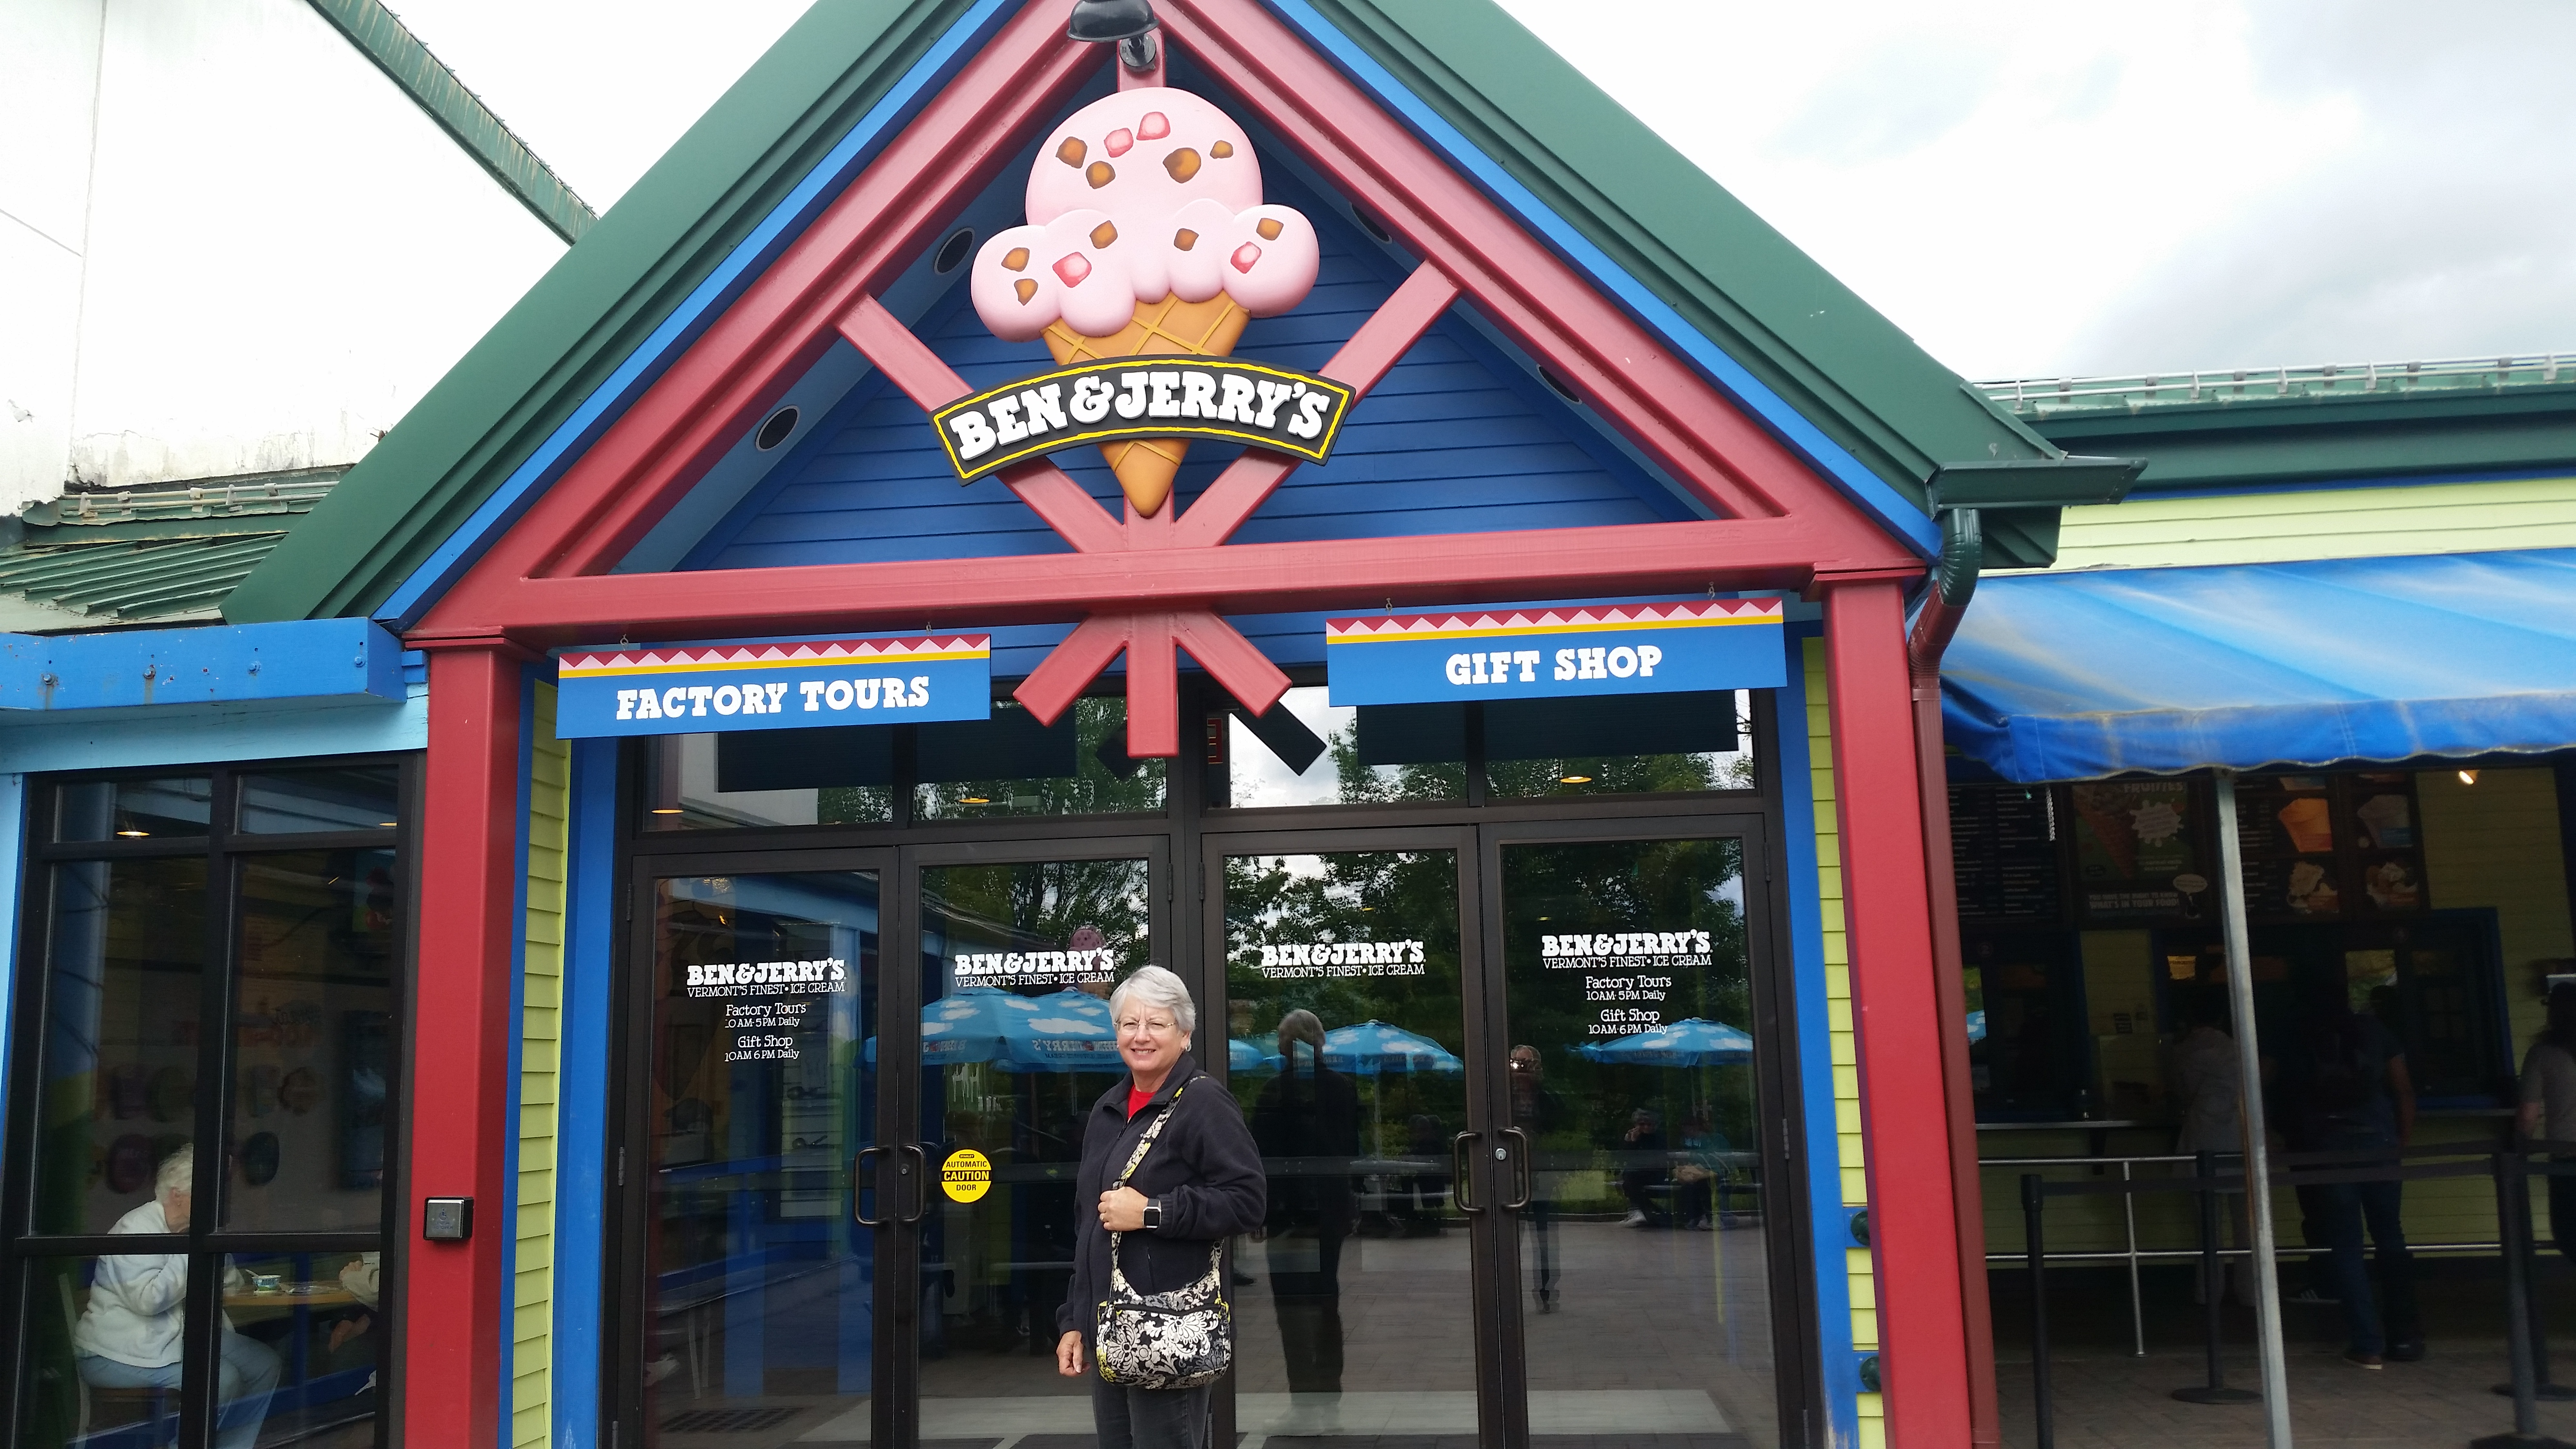 Furniture stores in burlington ontario canada - Ben And Jerry S Is A Unique Operation They Buy Their Milk And Other Ingredients From Select Local Farmers Who Meet Their Standards For Raising Their Herds